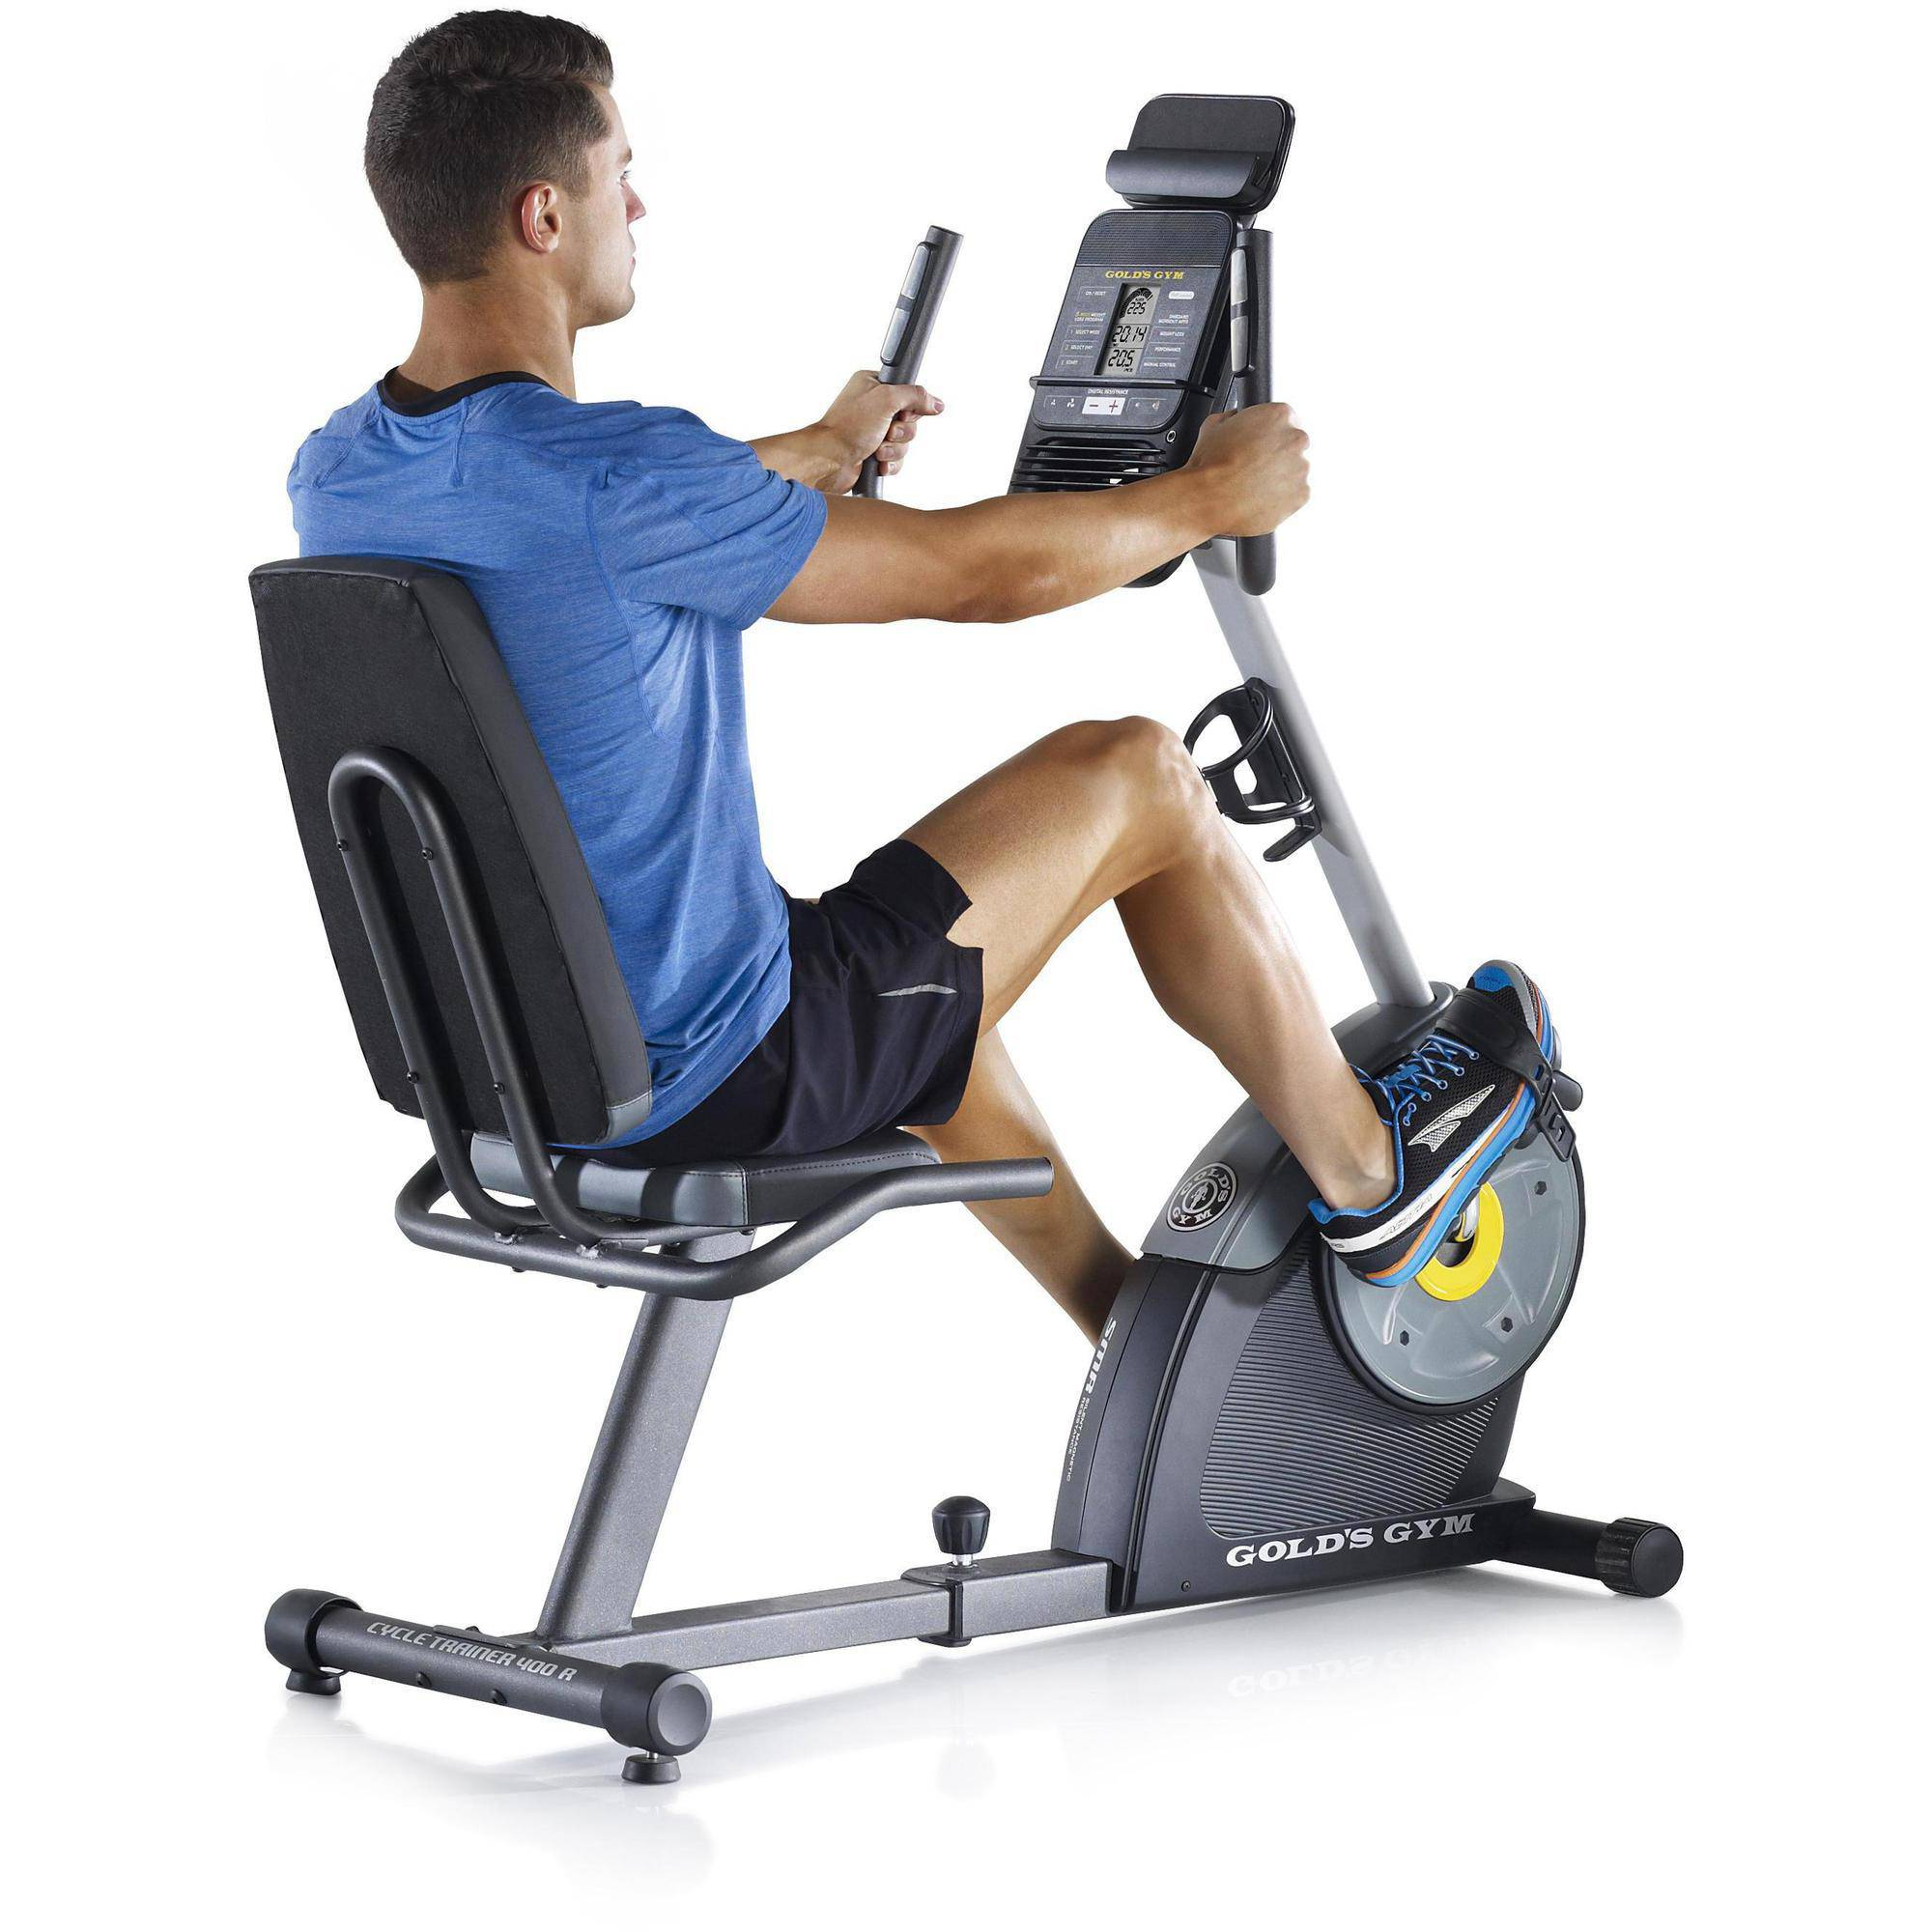 Gold's Gym Cycle Trainer 400R Exercise Bike